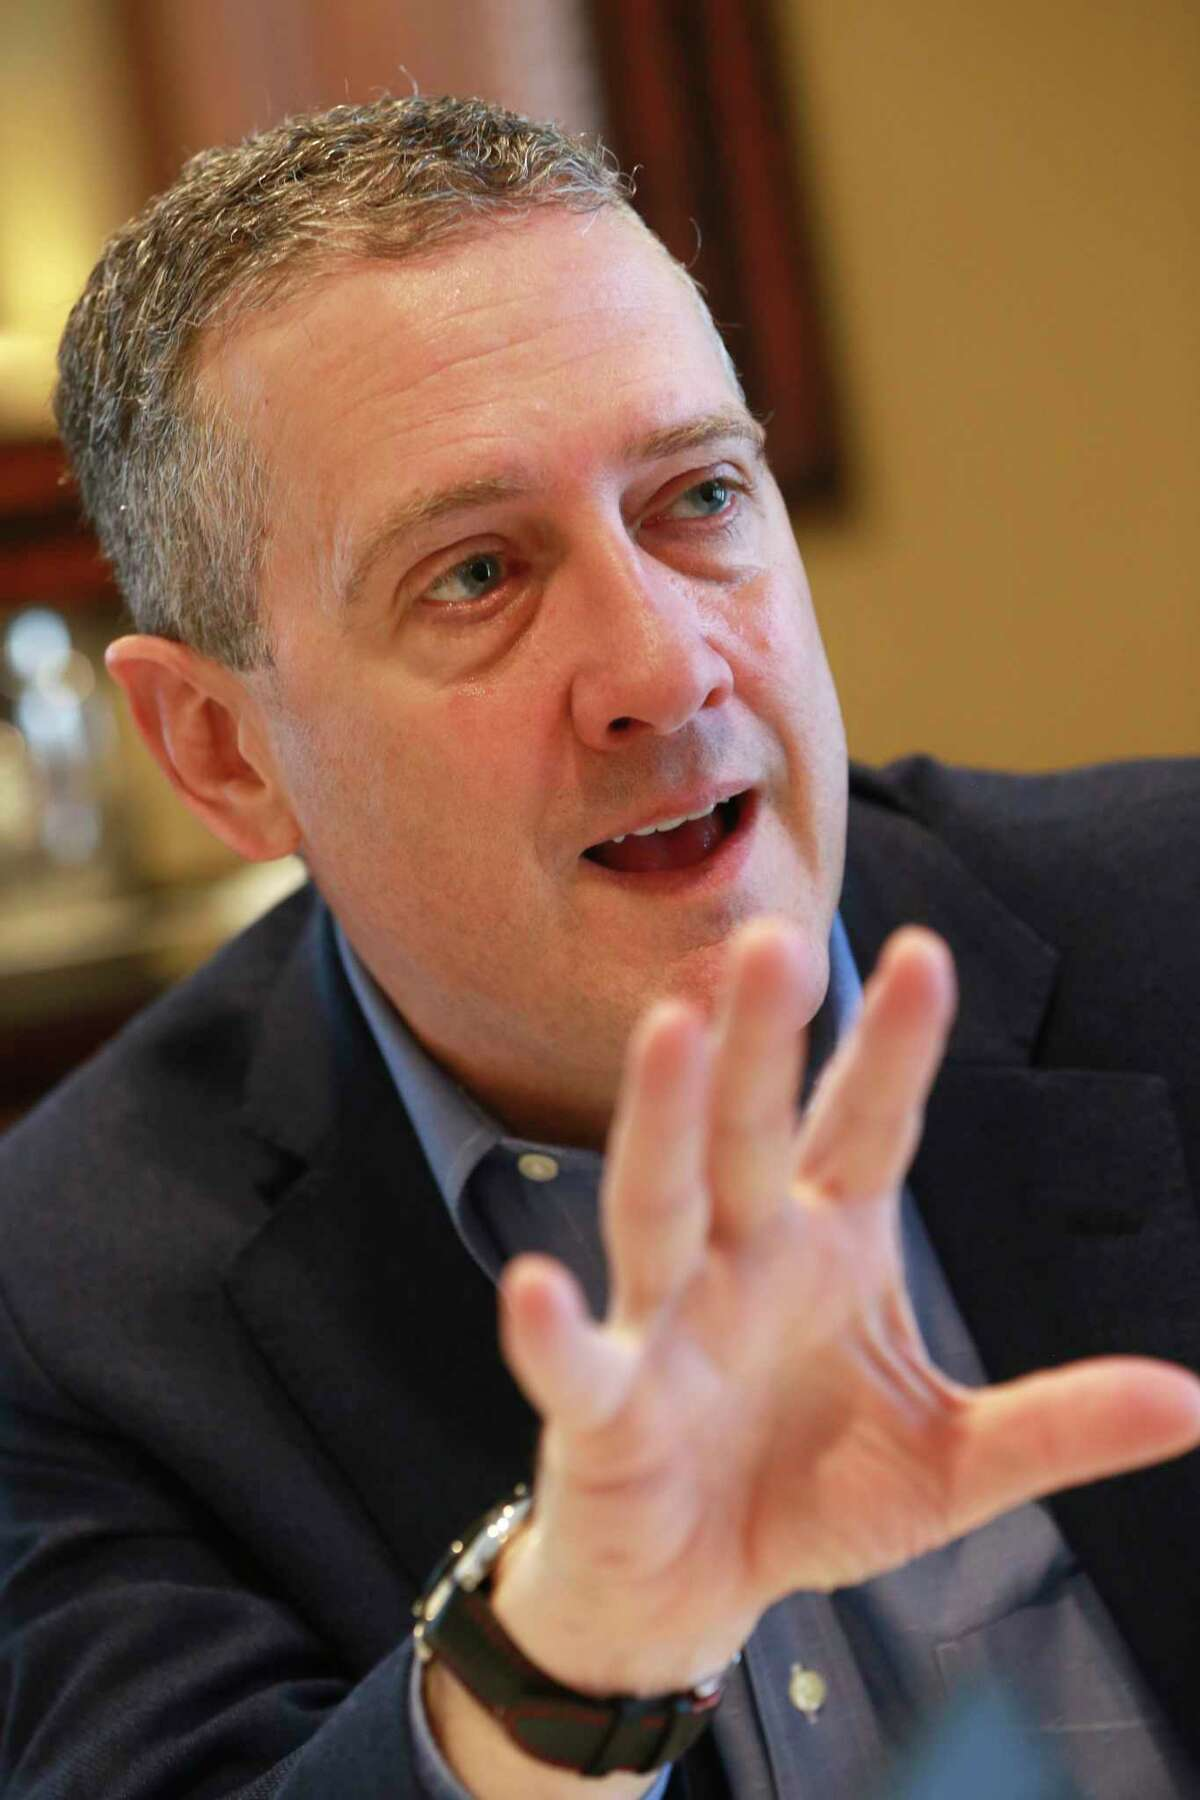 In this Nov. 19, 2019, photo James Bullard, president of the St. Louis Federal Reserve Bank, gestures during an interview in Richmond, Va. (AP Photo/Steve Helber)